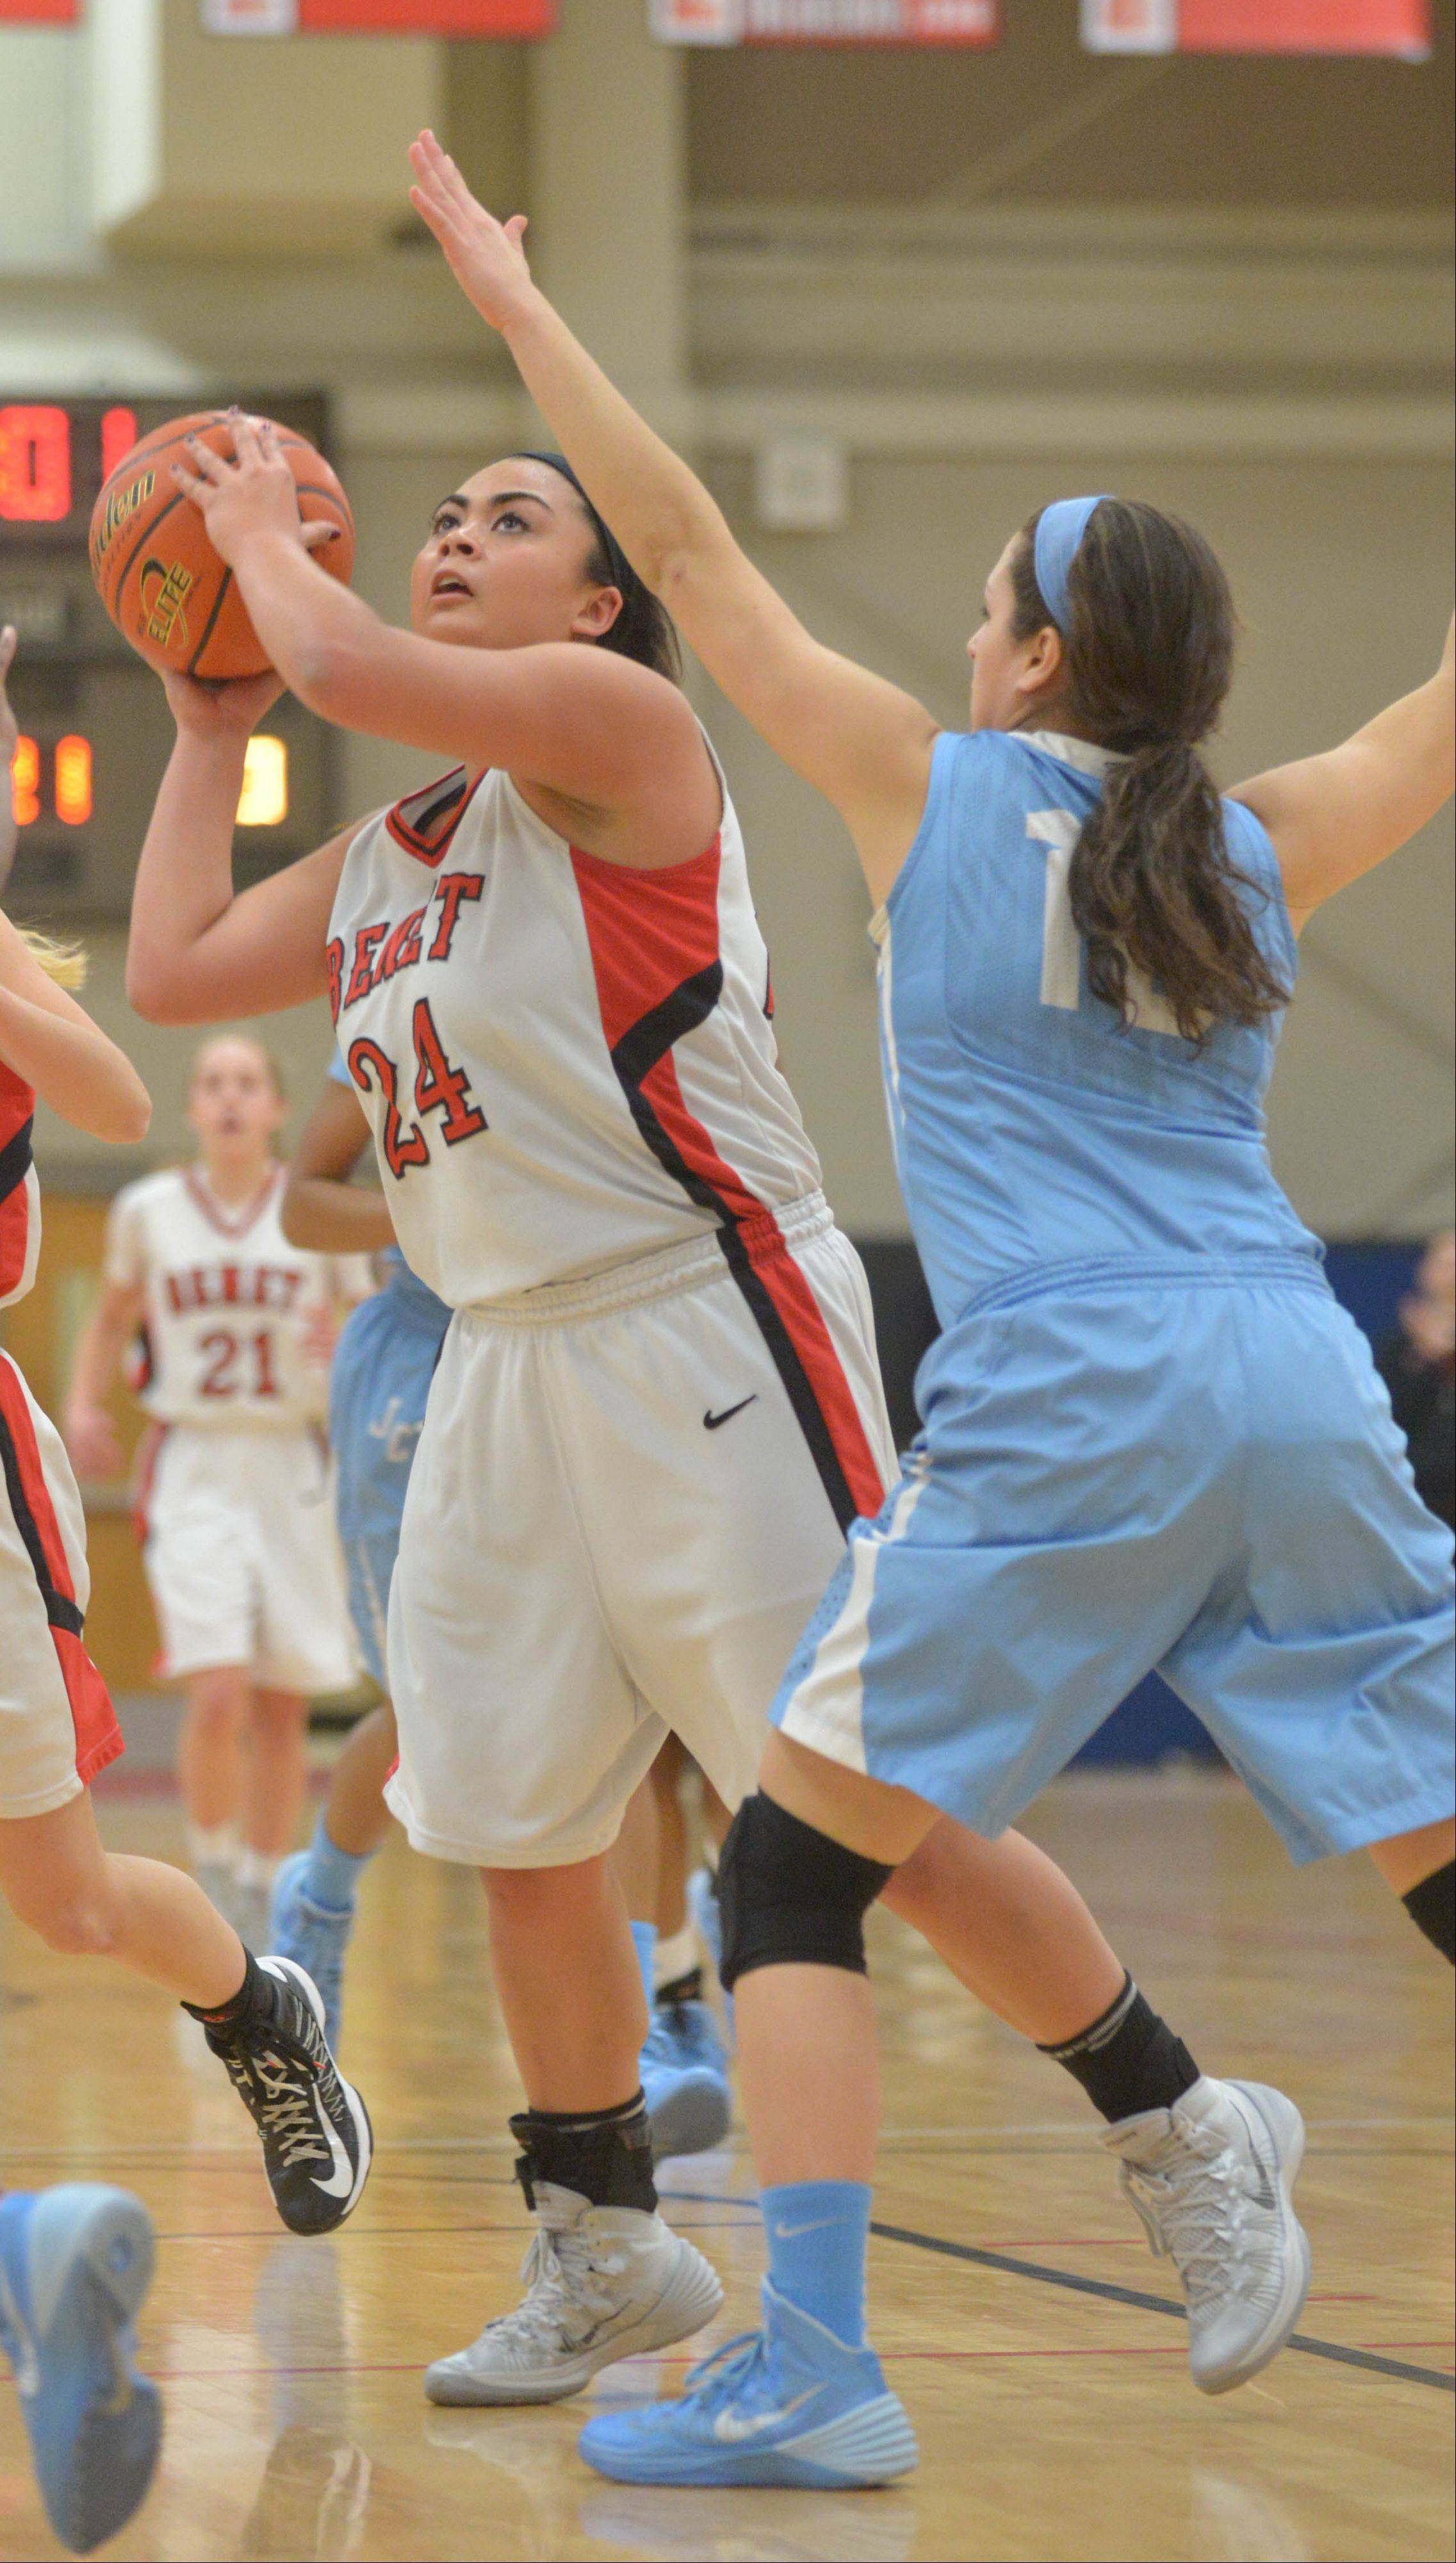 Eden Olson of Benet looks to take a shot.